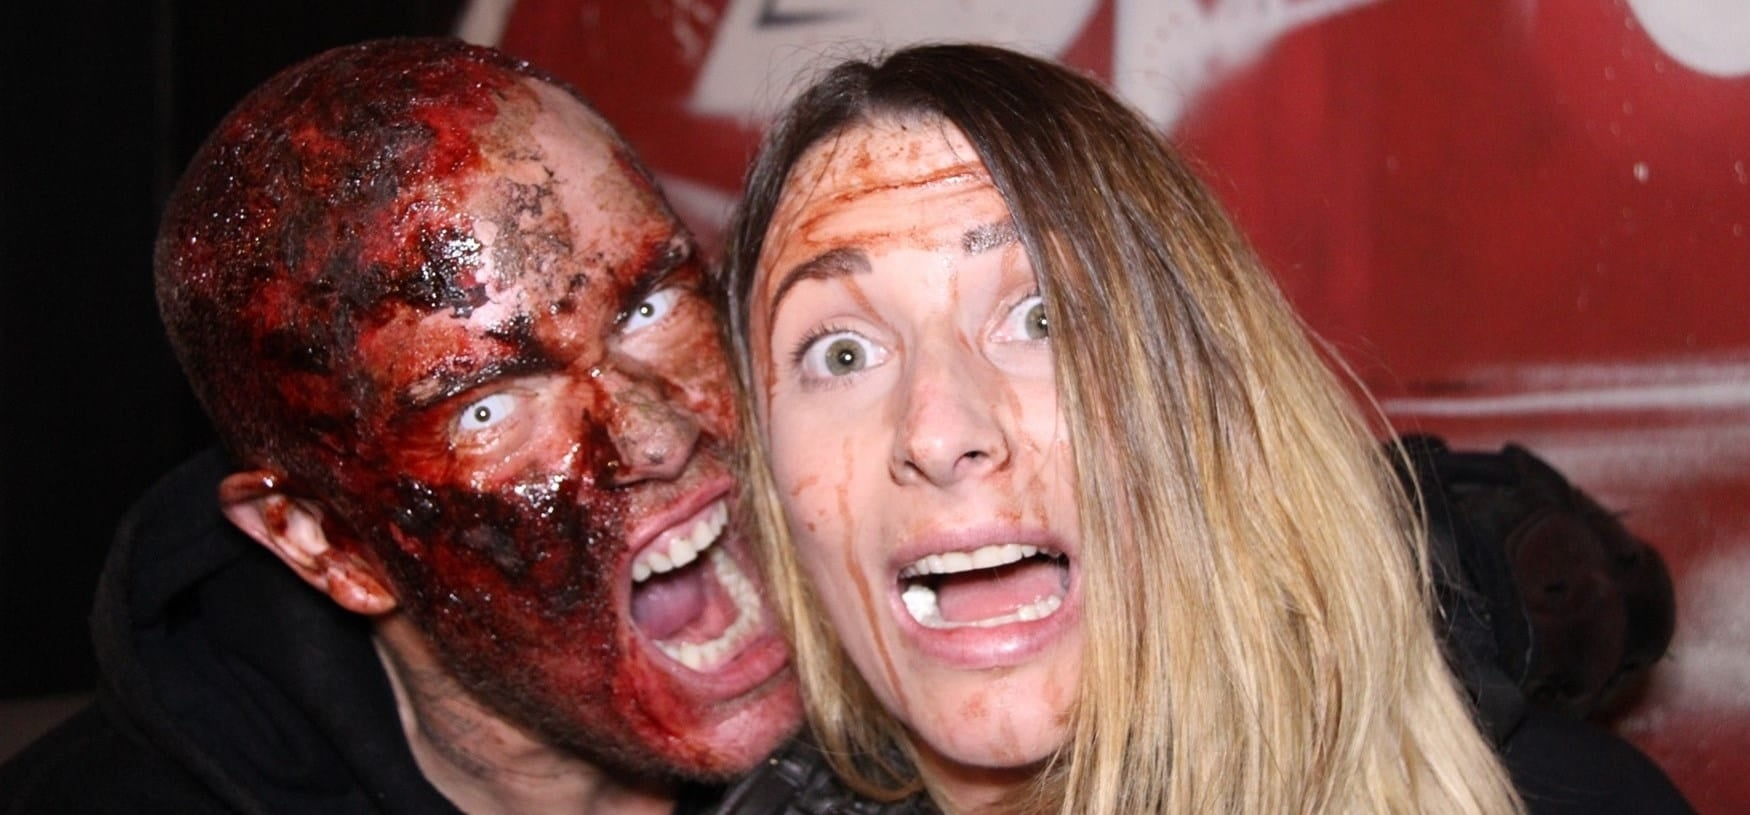 Zombie Infection Survival Experience - Sheffield-1